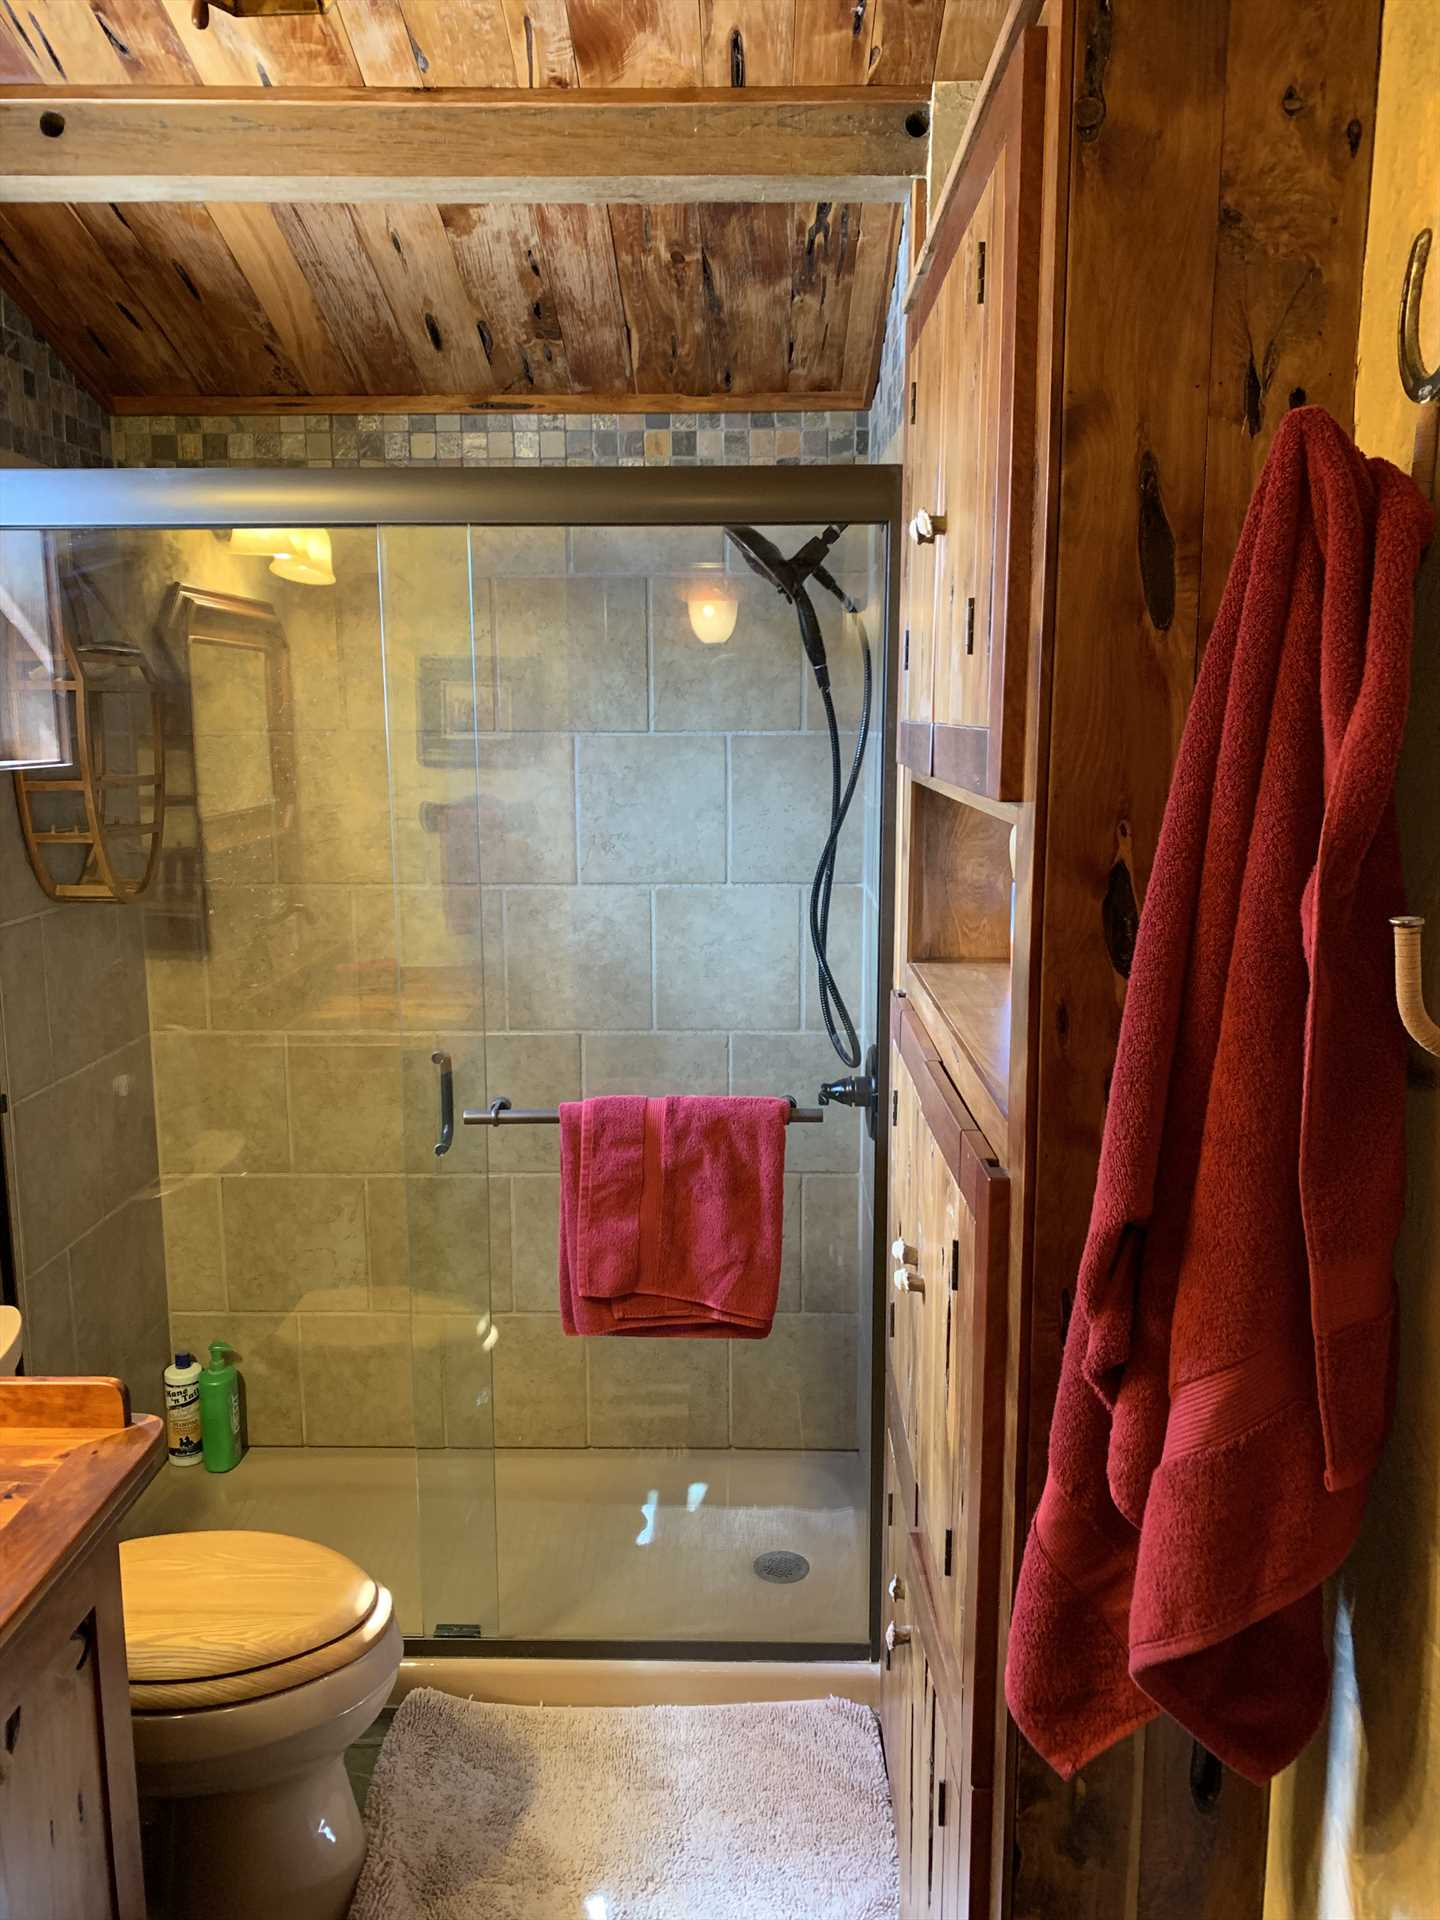 The warm, wood-highlighted theme of the cabin continues in the full bath, which ix kept neat as a pin.